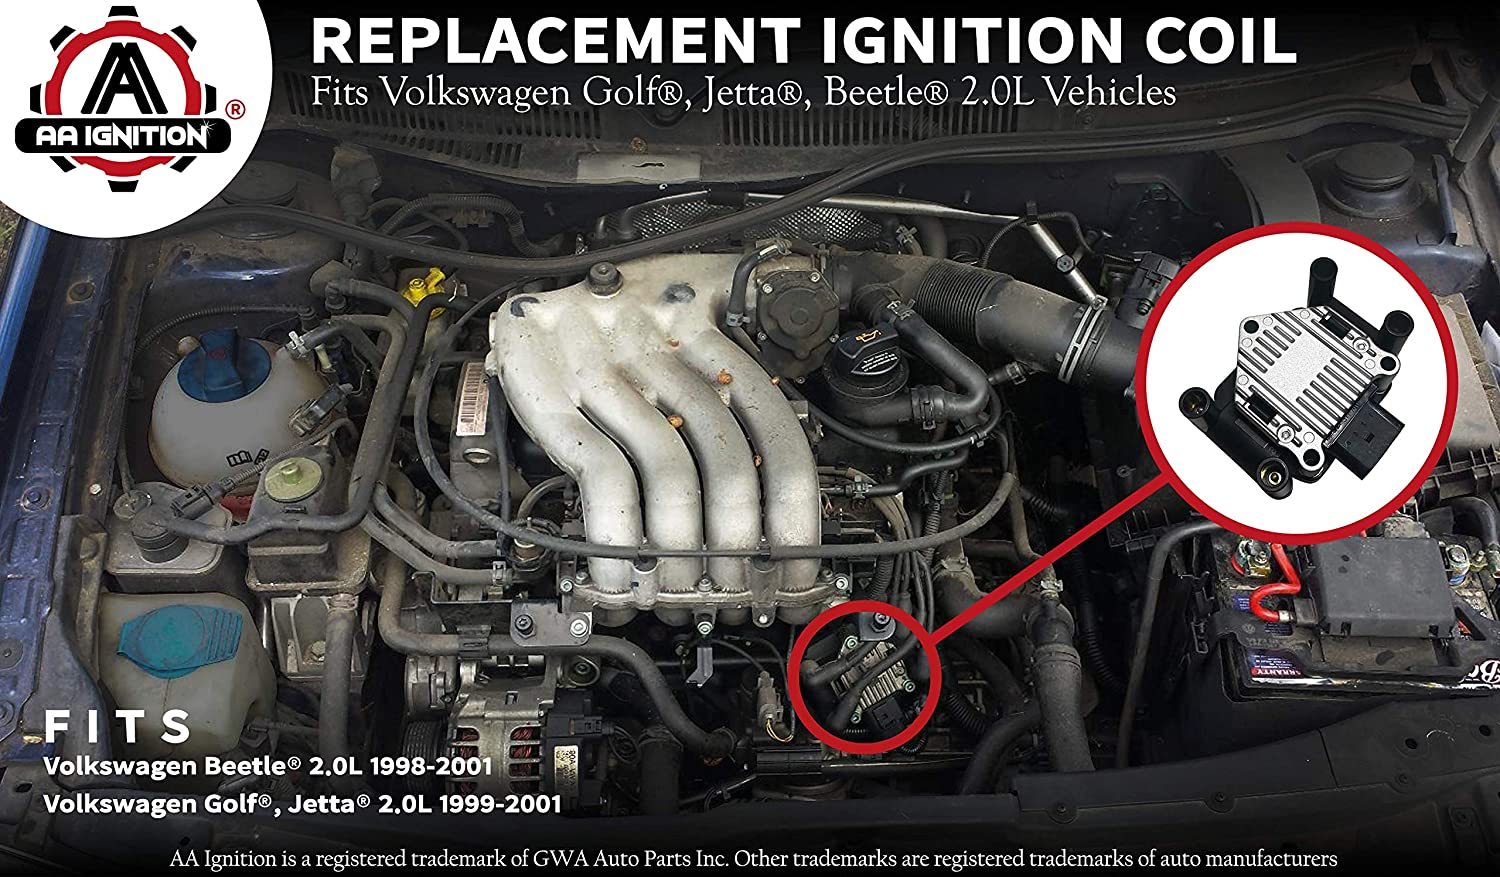 Amazon.com: Ignition Coil Pack - Fits 1999, 2000, 2001 Volkswagen Golf, Jetta, Beetle 2.0L - Replaces Part# 032905106E, 032905106B, 032 905 106B - Coil Pack ...